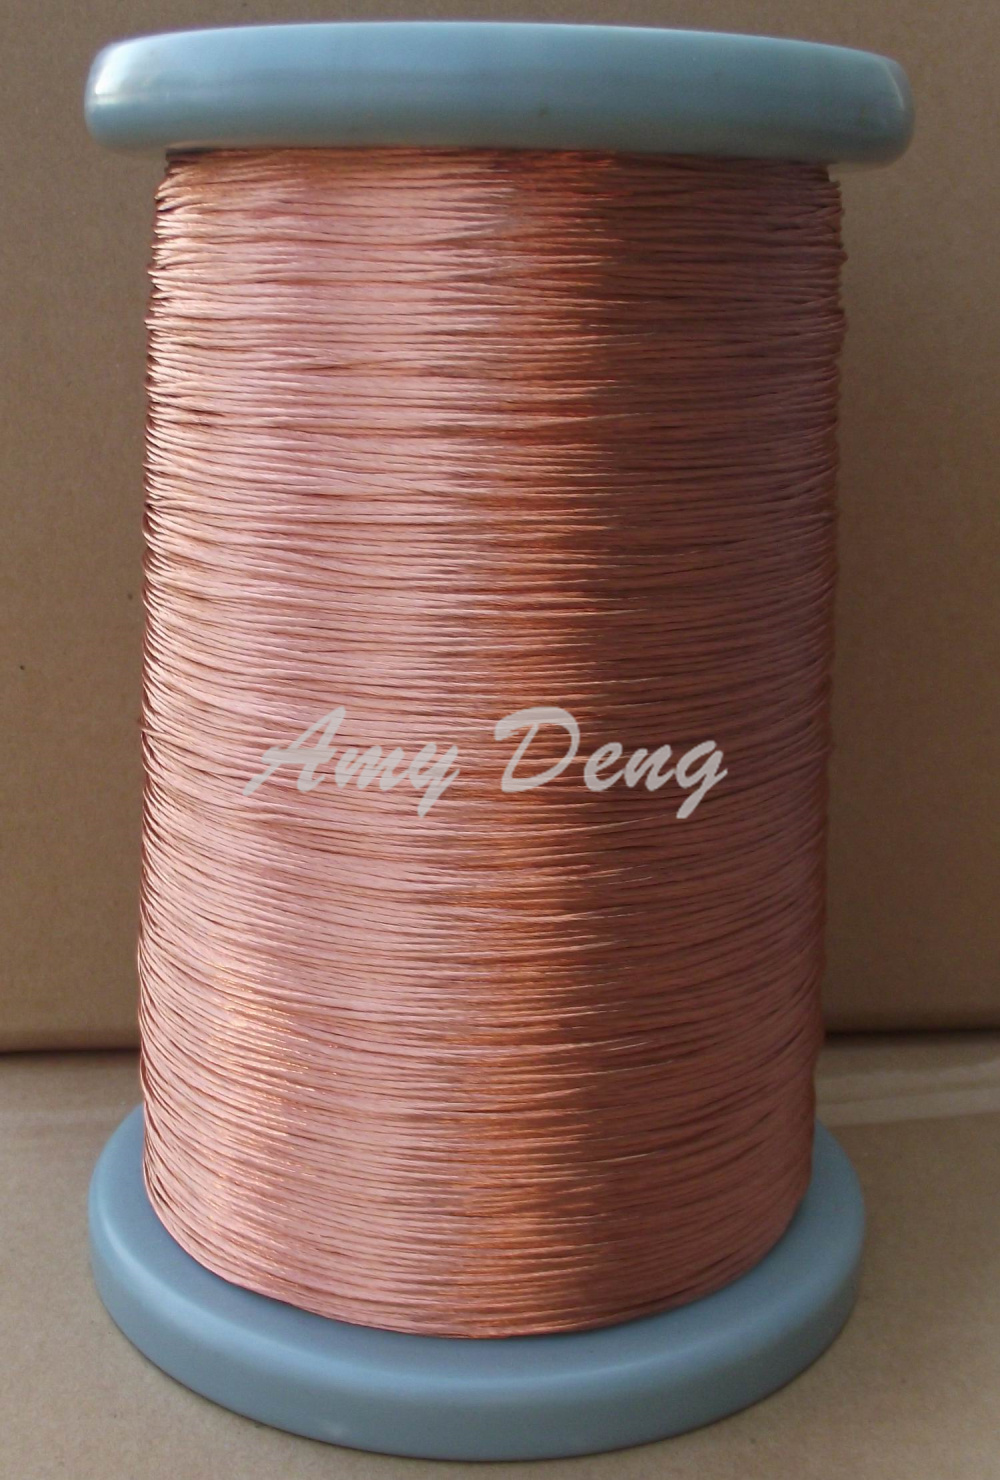 50 meters lot 0 1x160 shares of the shares of the strand polyurethane wire strand twisted